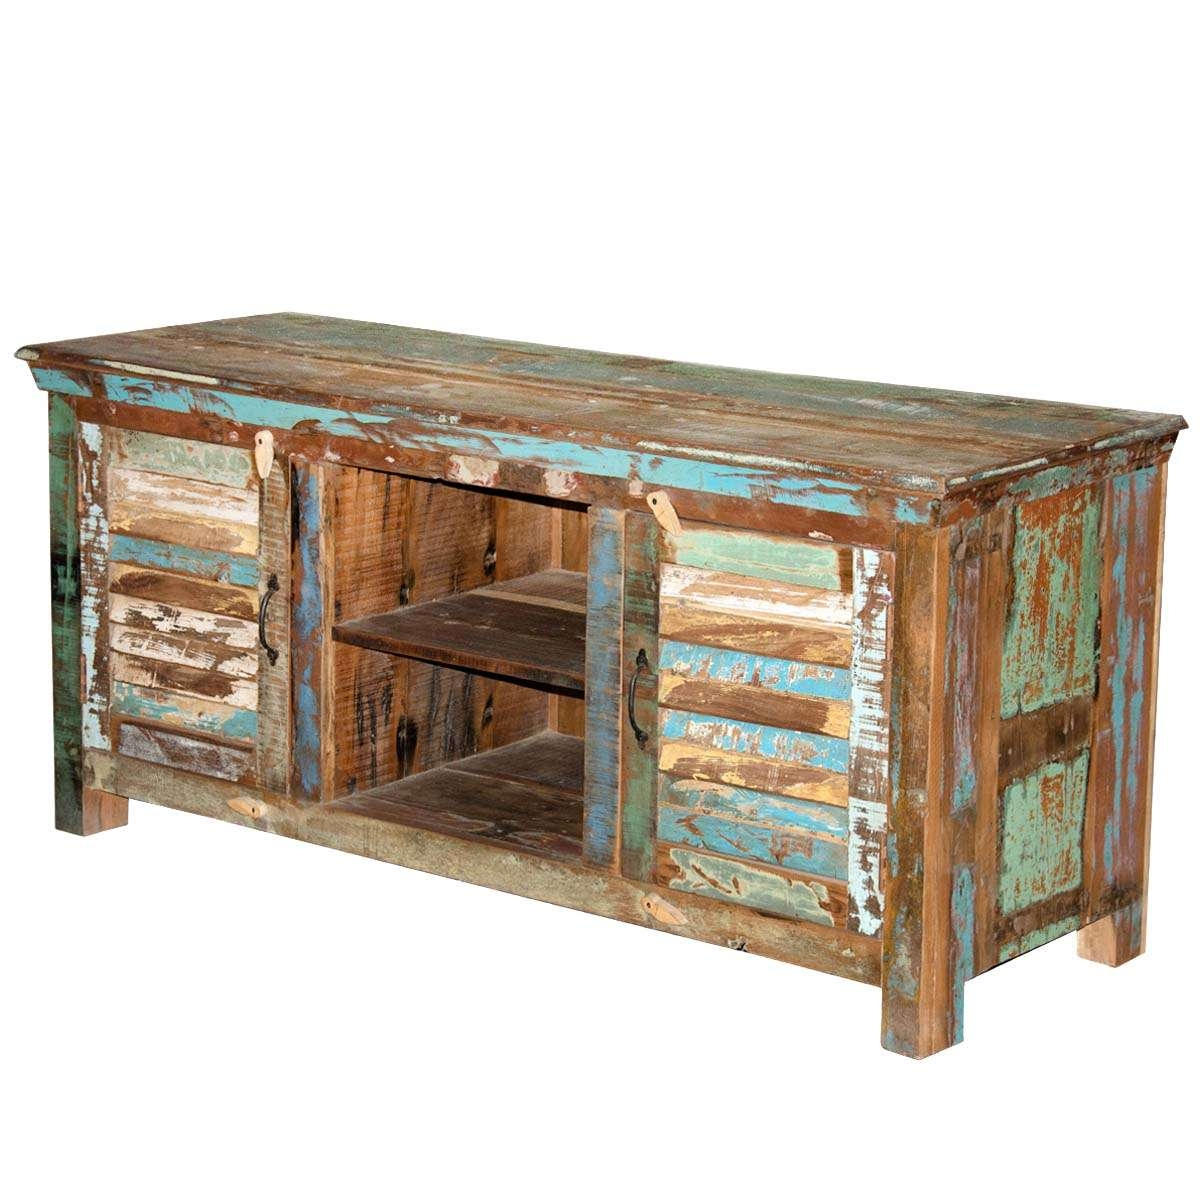 Tv : Reclaimed Wood And Metal Tv Stands Fabulous Distressed Wood Pertaining To Reclaimed Wood And Metal Tv Stands (View 13 of 15)